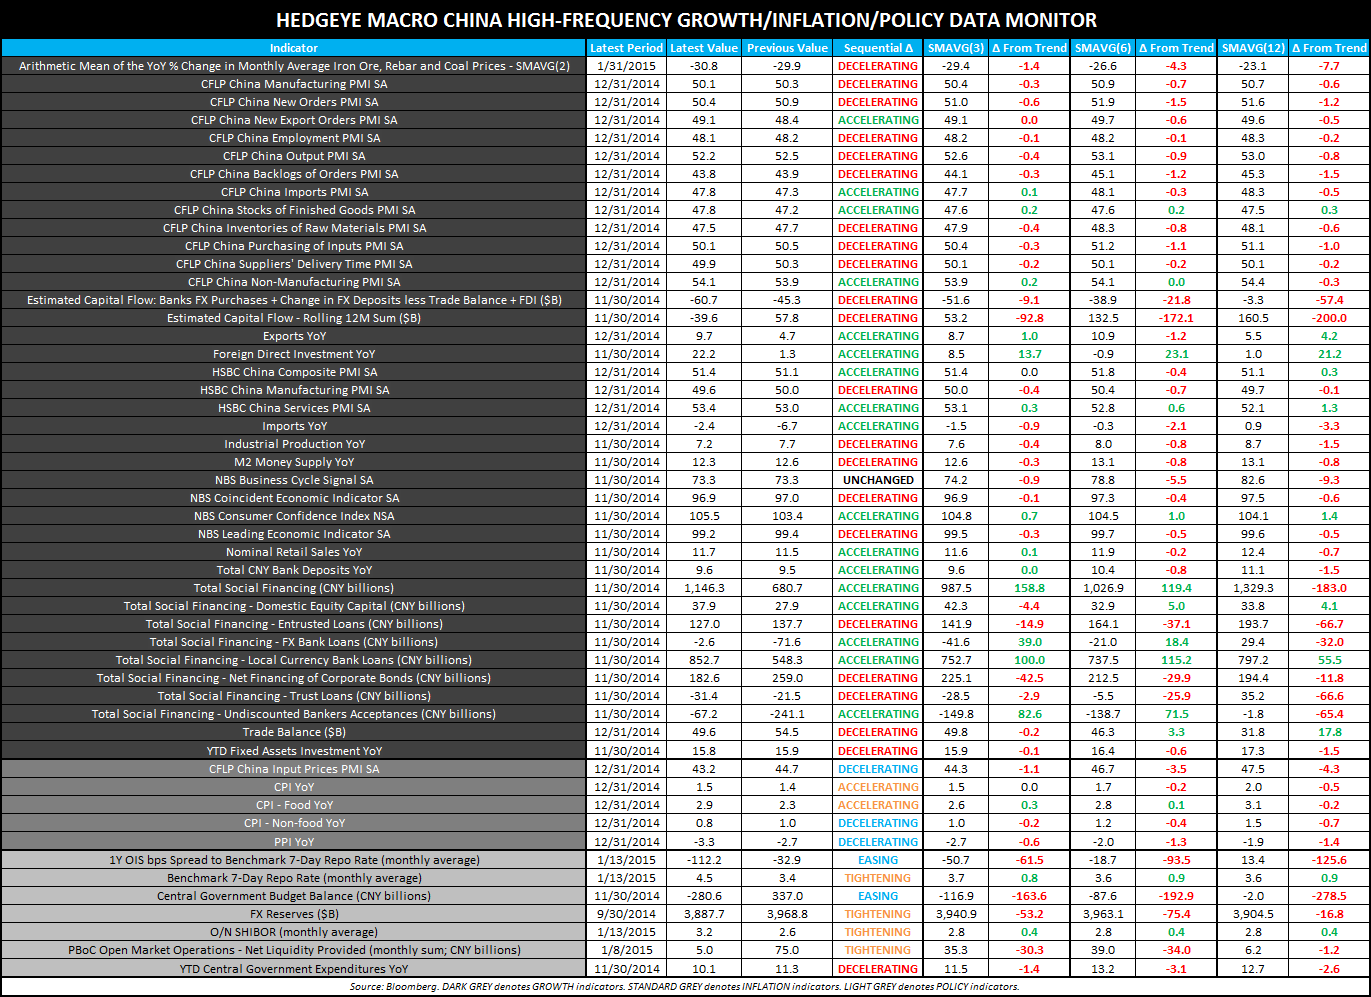 THE HEDGEYE MACRO PLAYBOOK - CHINA High Frequency GIP Data Monitor